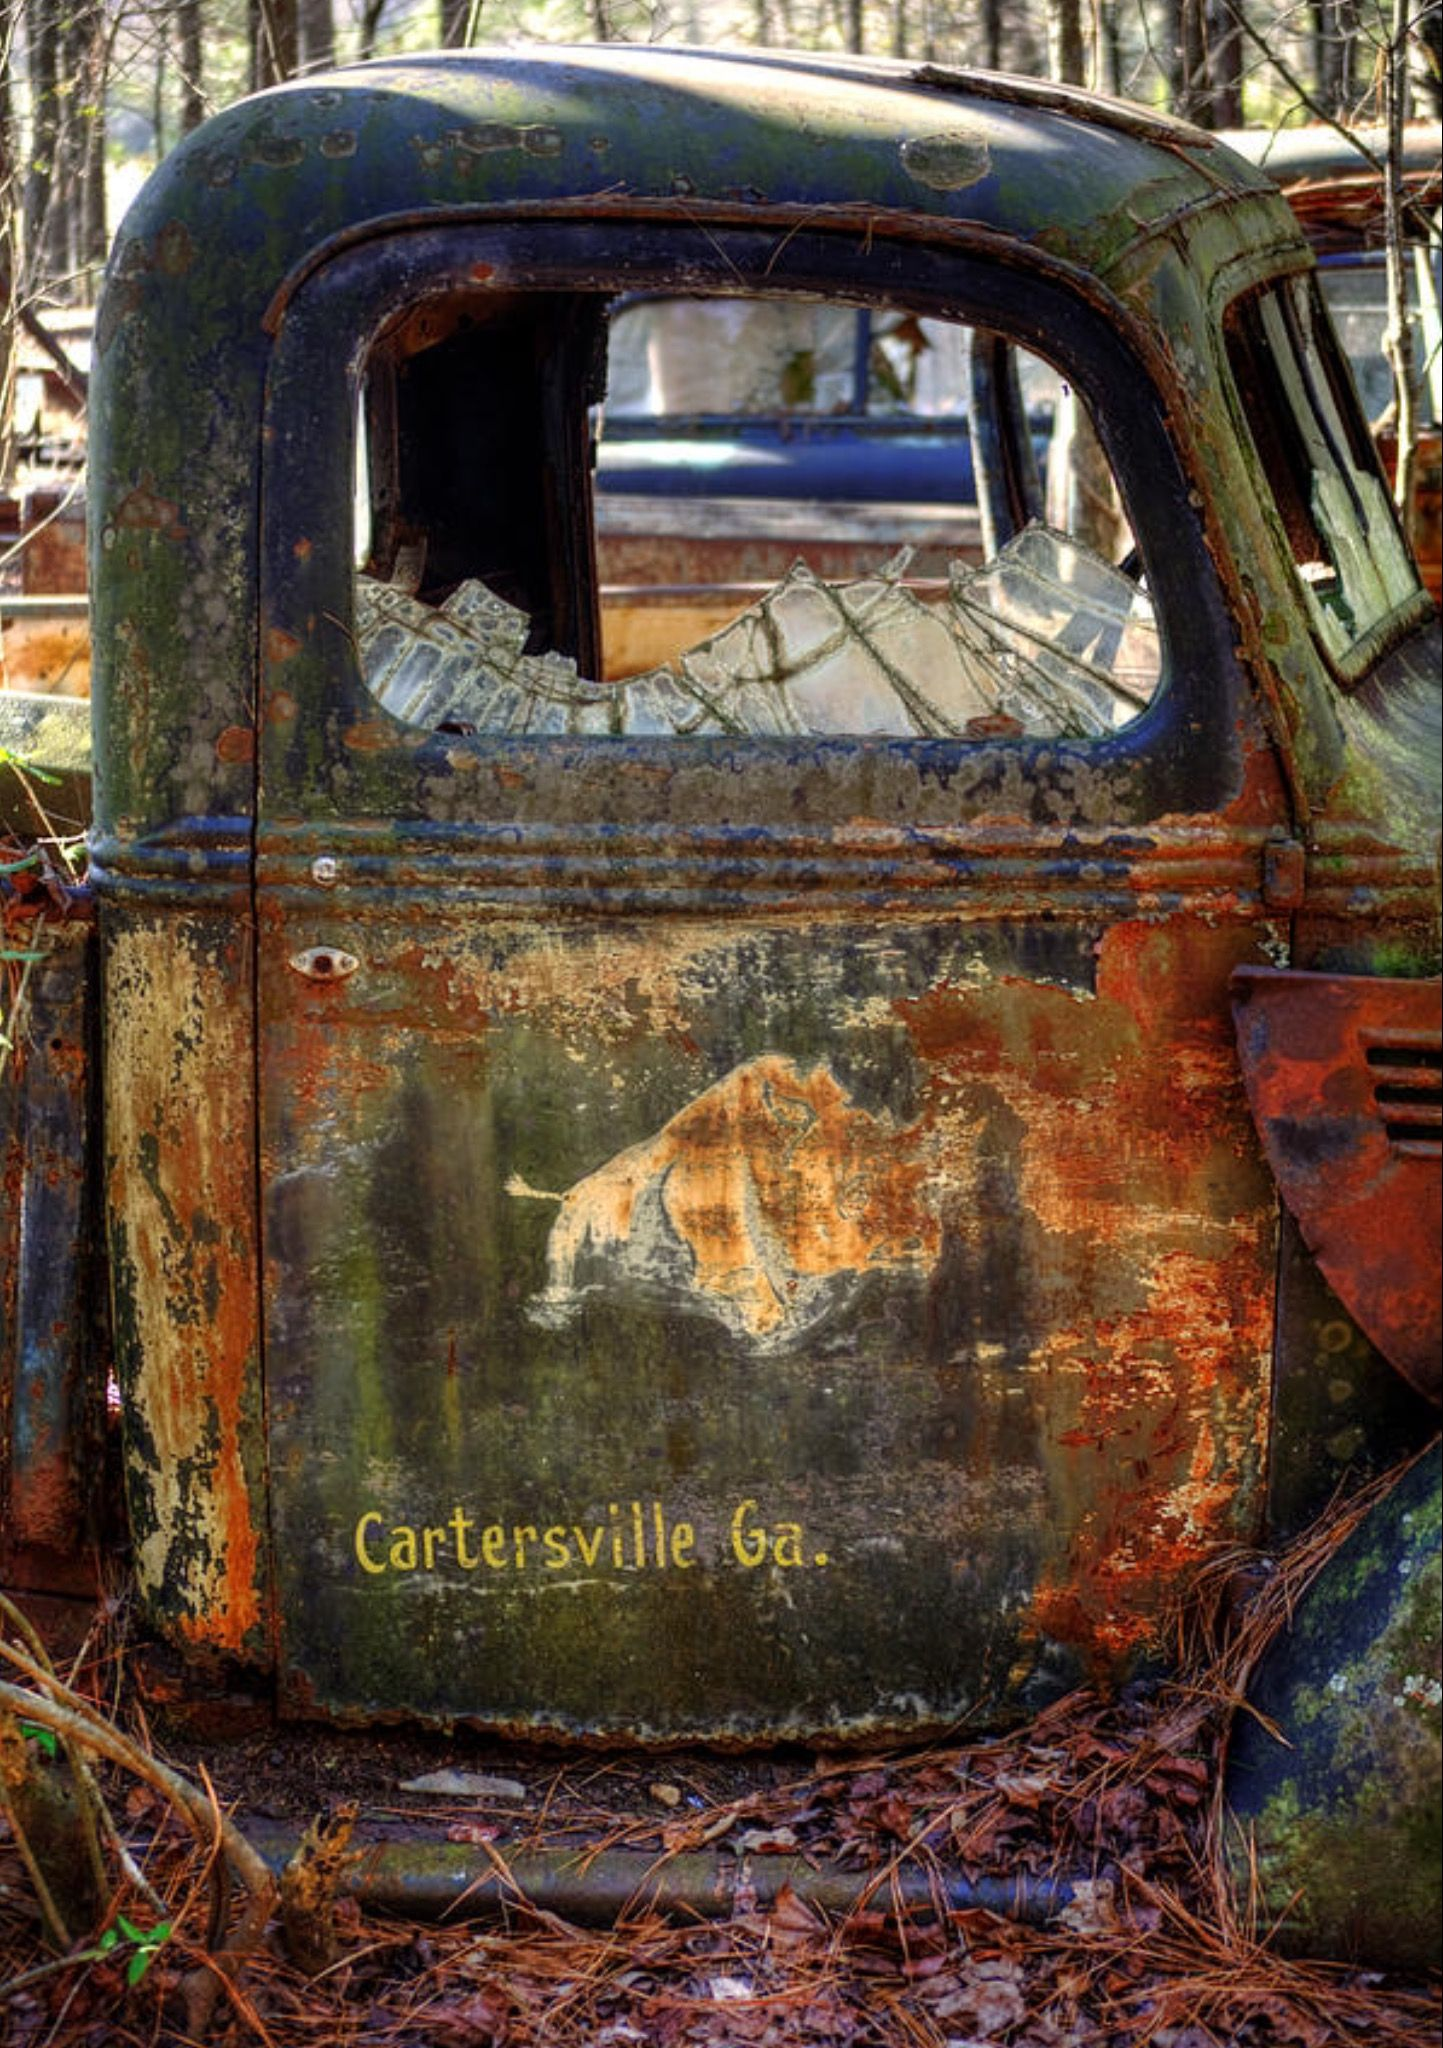 Rusty rino is a photograph by greg mimbs color photograph of an old